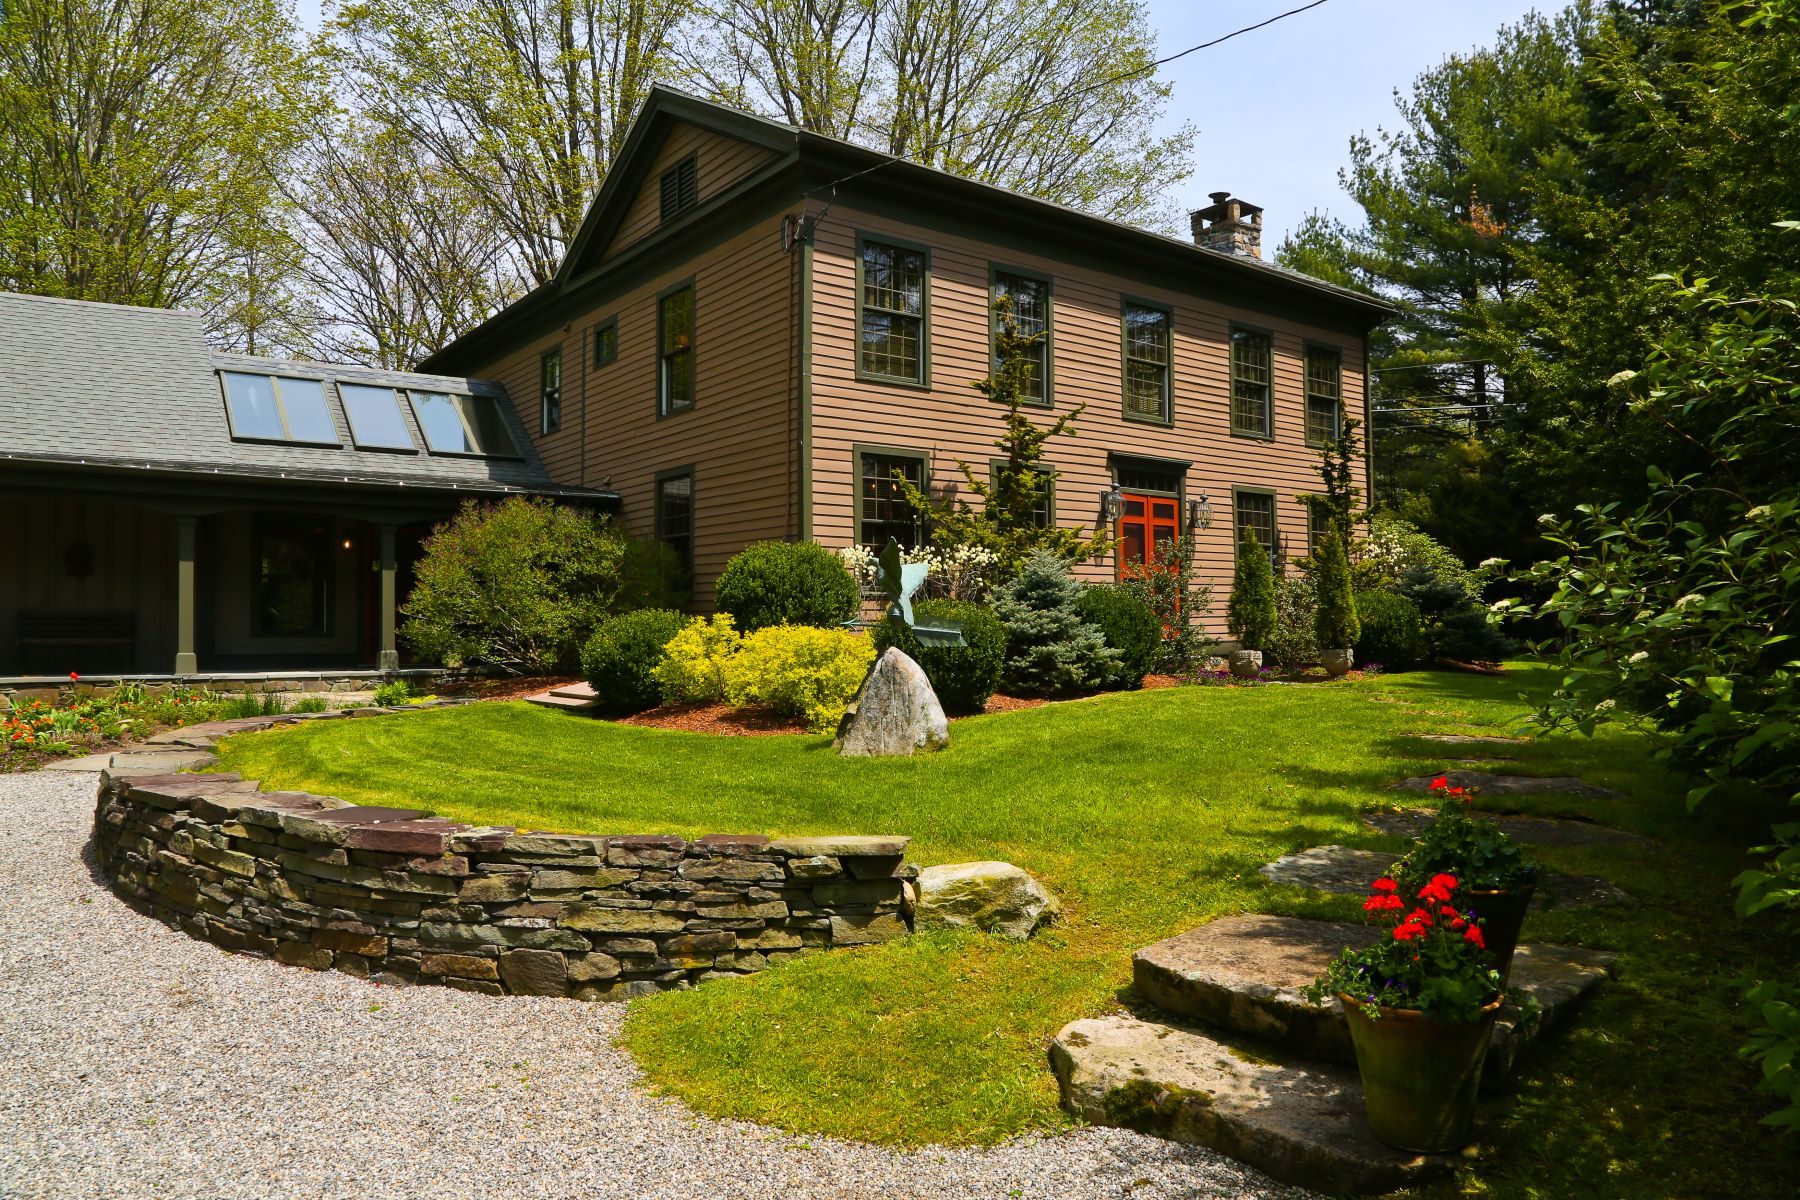 Single Family Homes for Active at Meticulous Renovated 19th Century Farmhouse 0 & 399 State Rd Great Barrington, Massachusetts 01230 United States